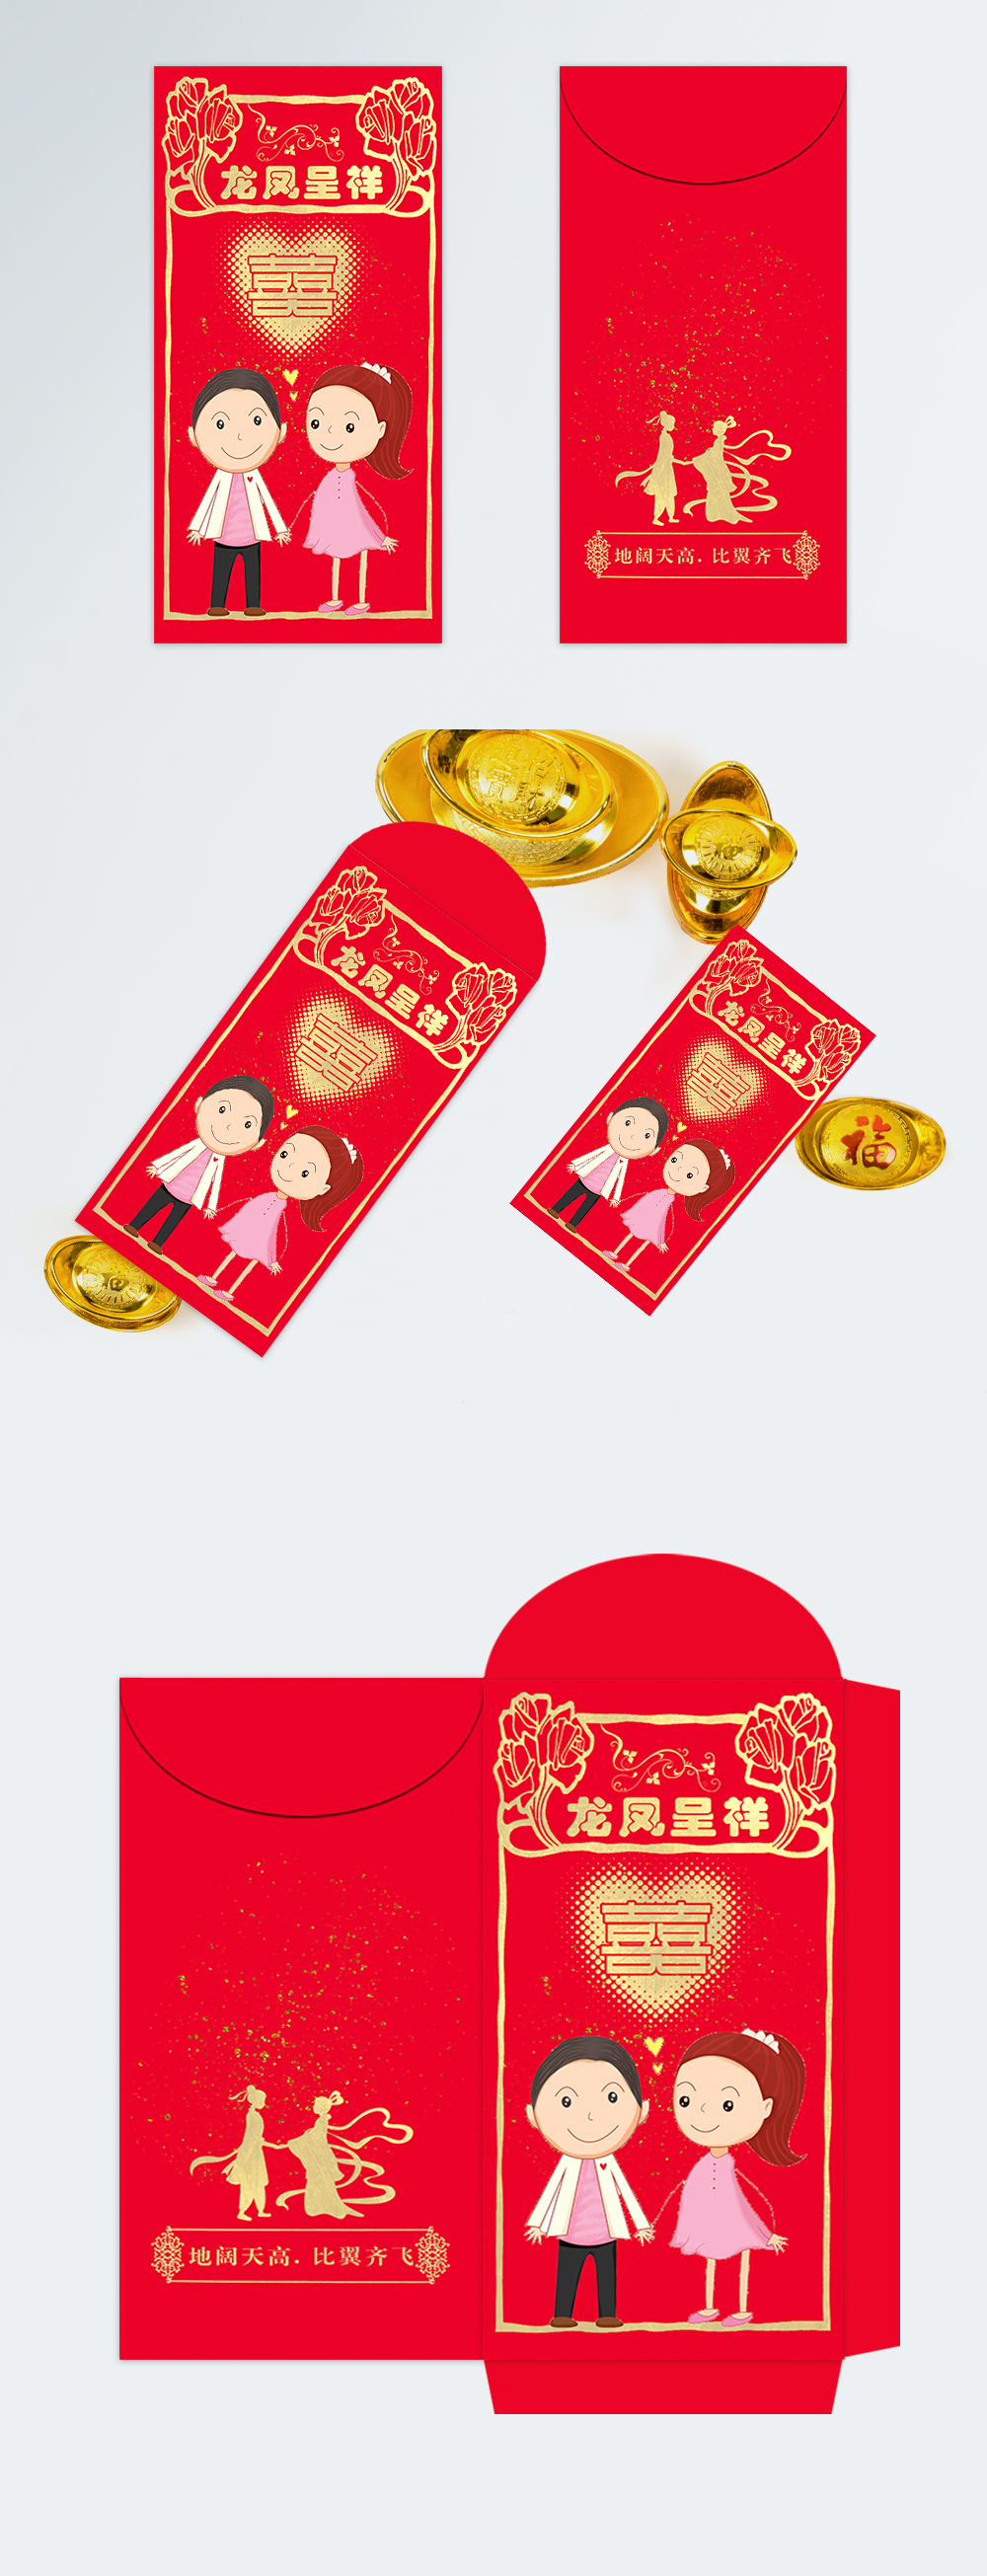 longfeng chengxiang wedding red envelope template image picture free